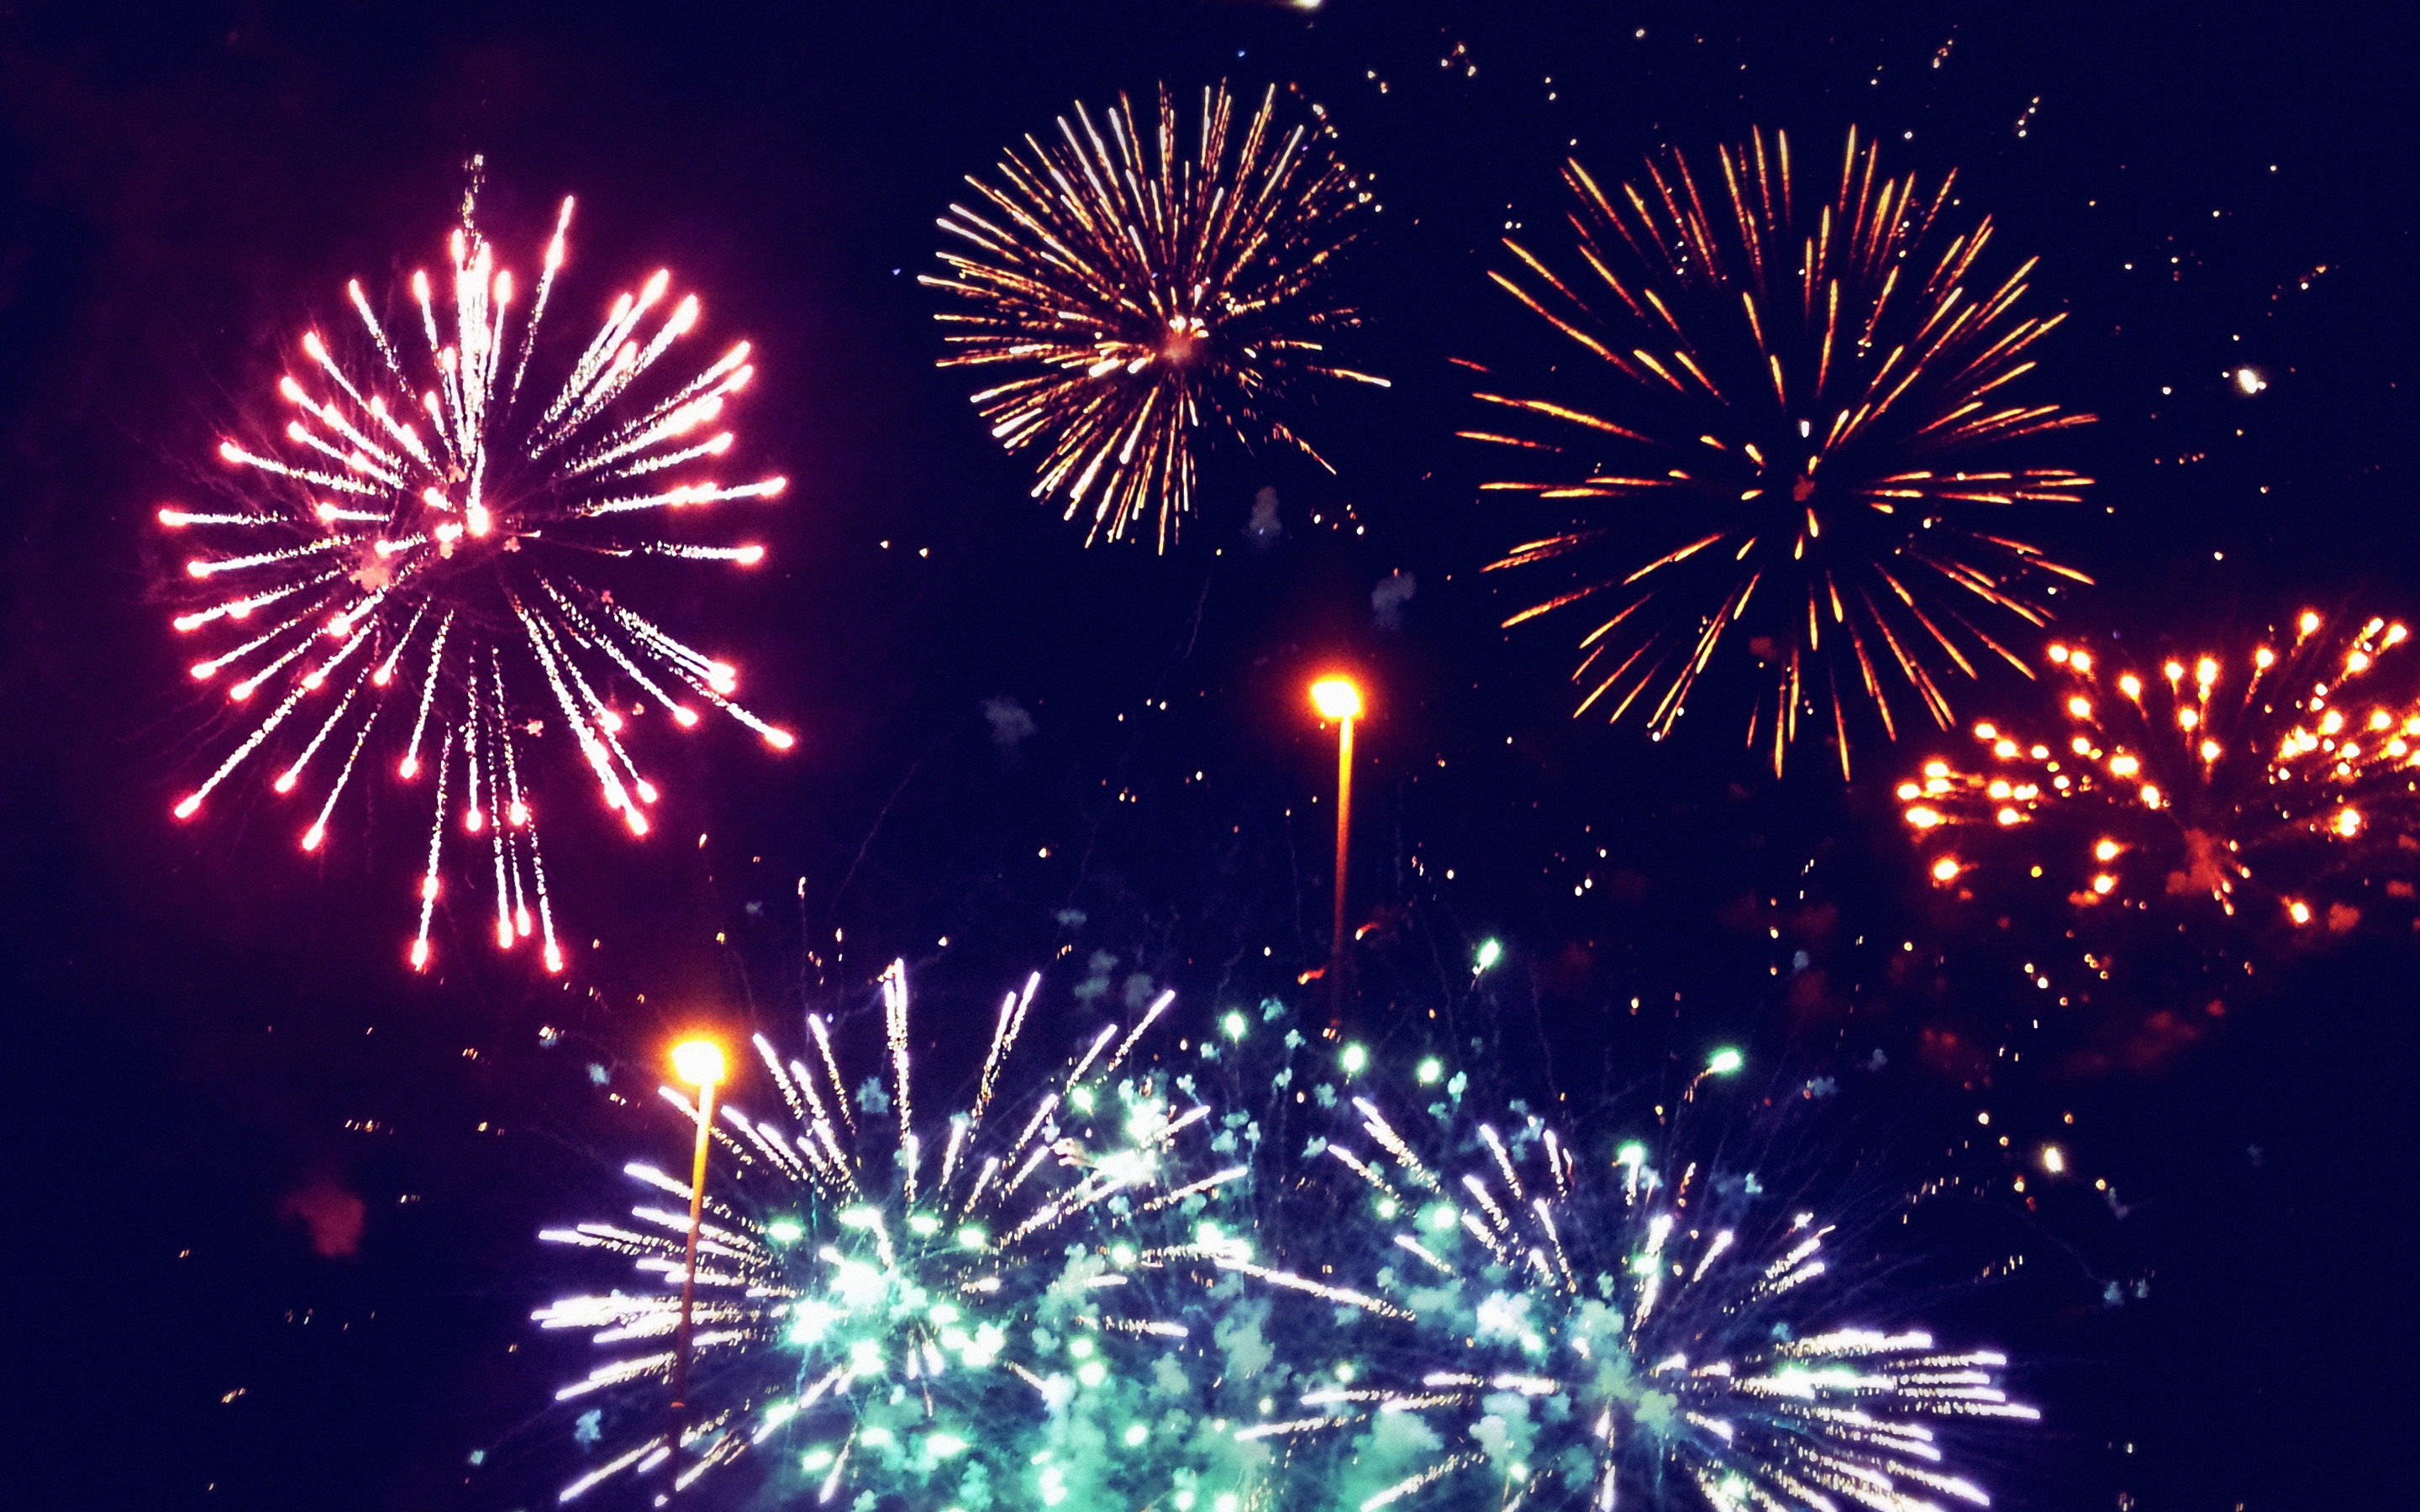 Fireworks Wallpaper Fullscreen HD